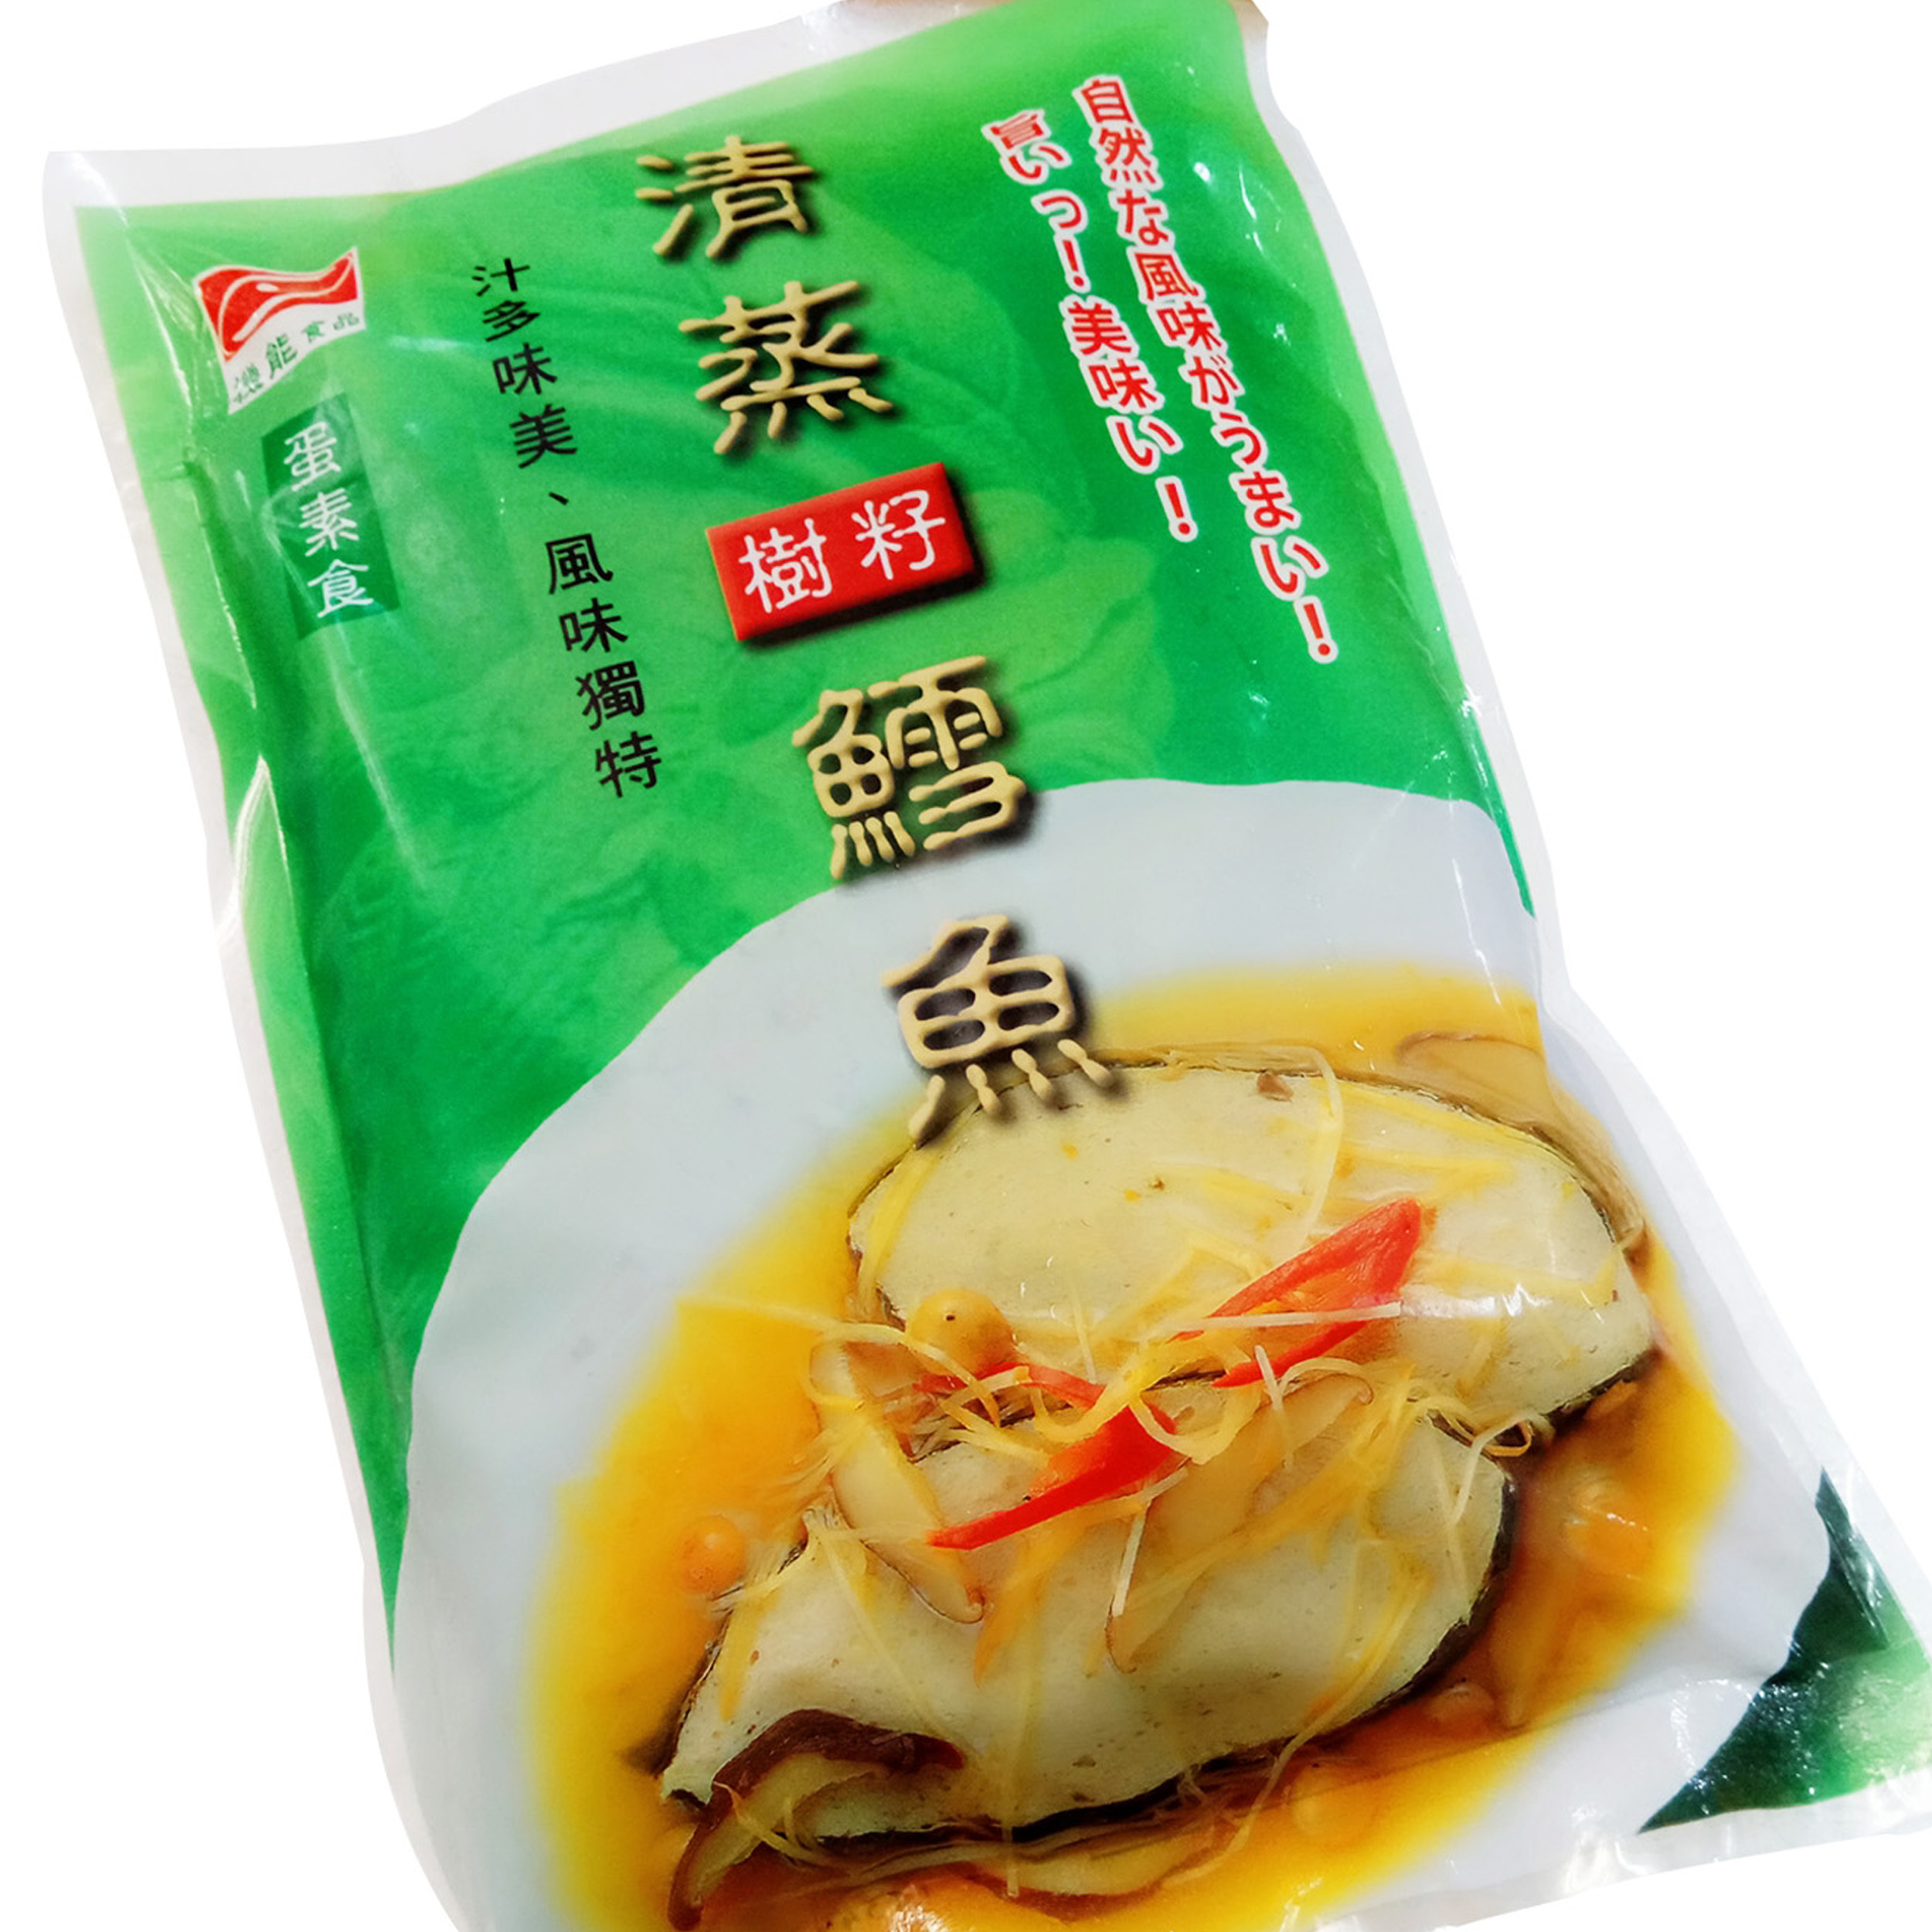 Image Steamed Cod Fish 机能-清蒸鳕鱼 400grams